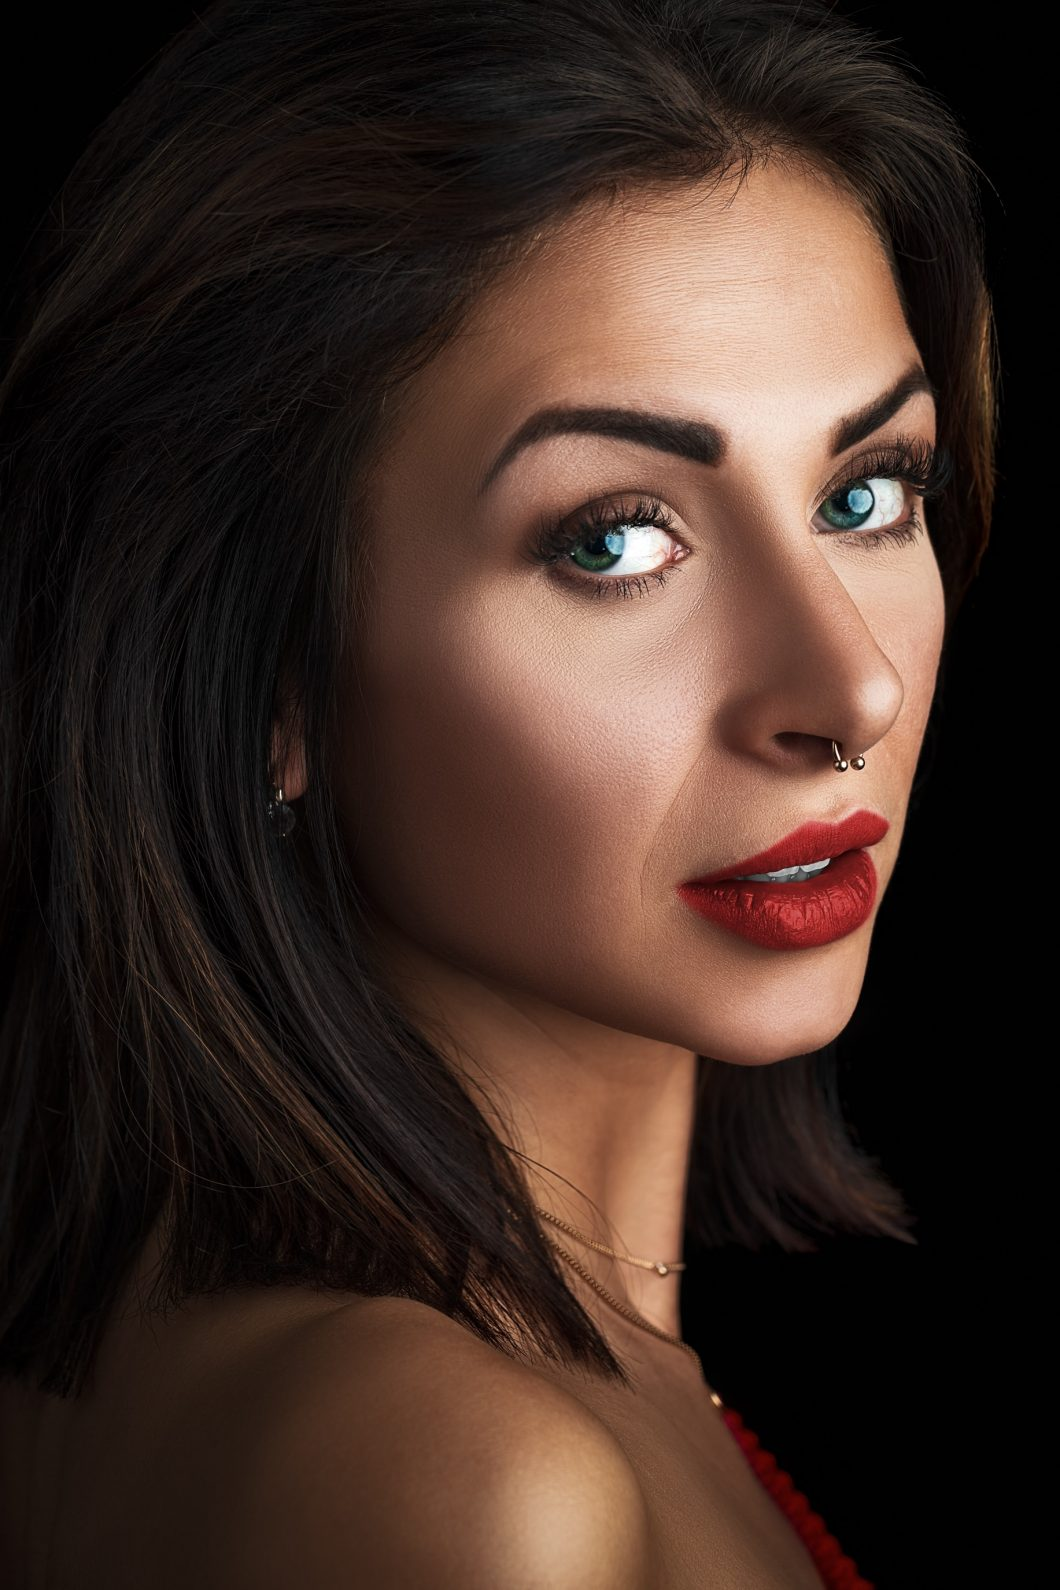 A pretty lady with red lip stick, a nose ring and piercing blue eyes